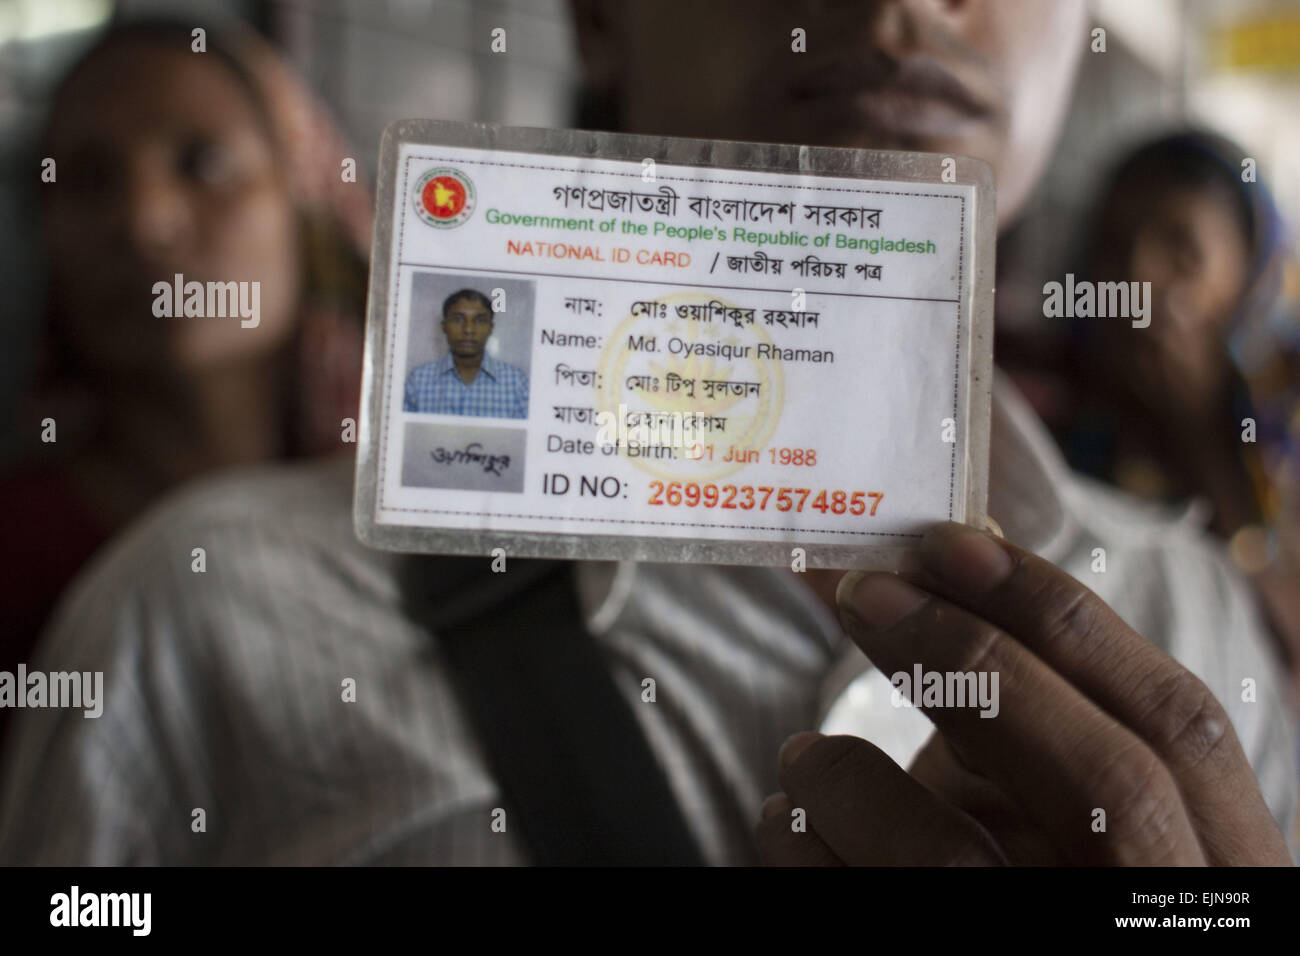 national id card essay Identity (id) cards are known for their utility and integrity, which led to the adoption of its use by many countries all over the world some countries even have national ids, which are officially released and which use is mandatory to all who sojourn in said territories.